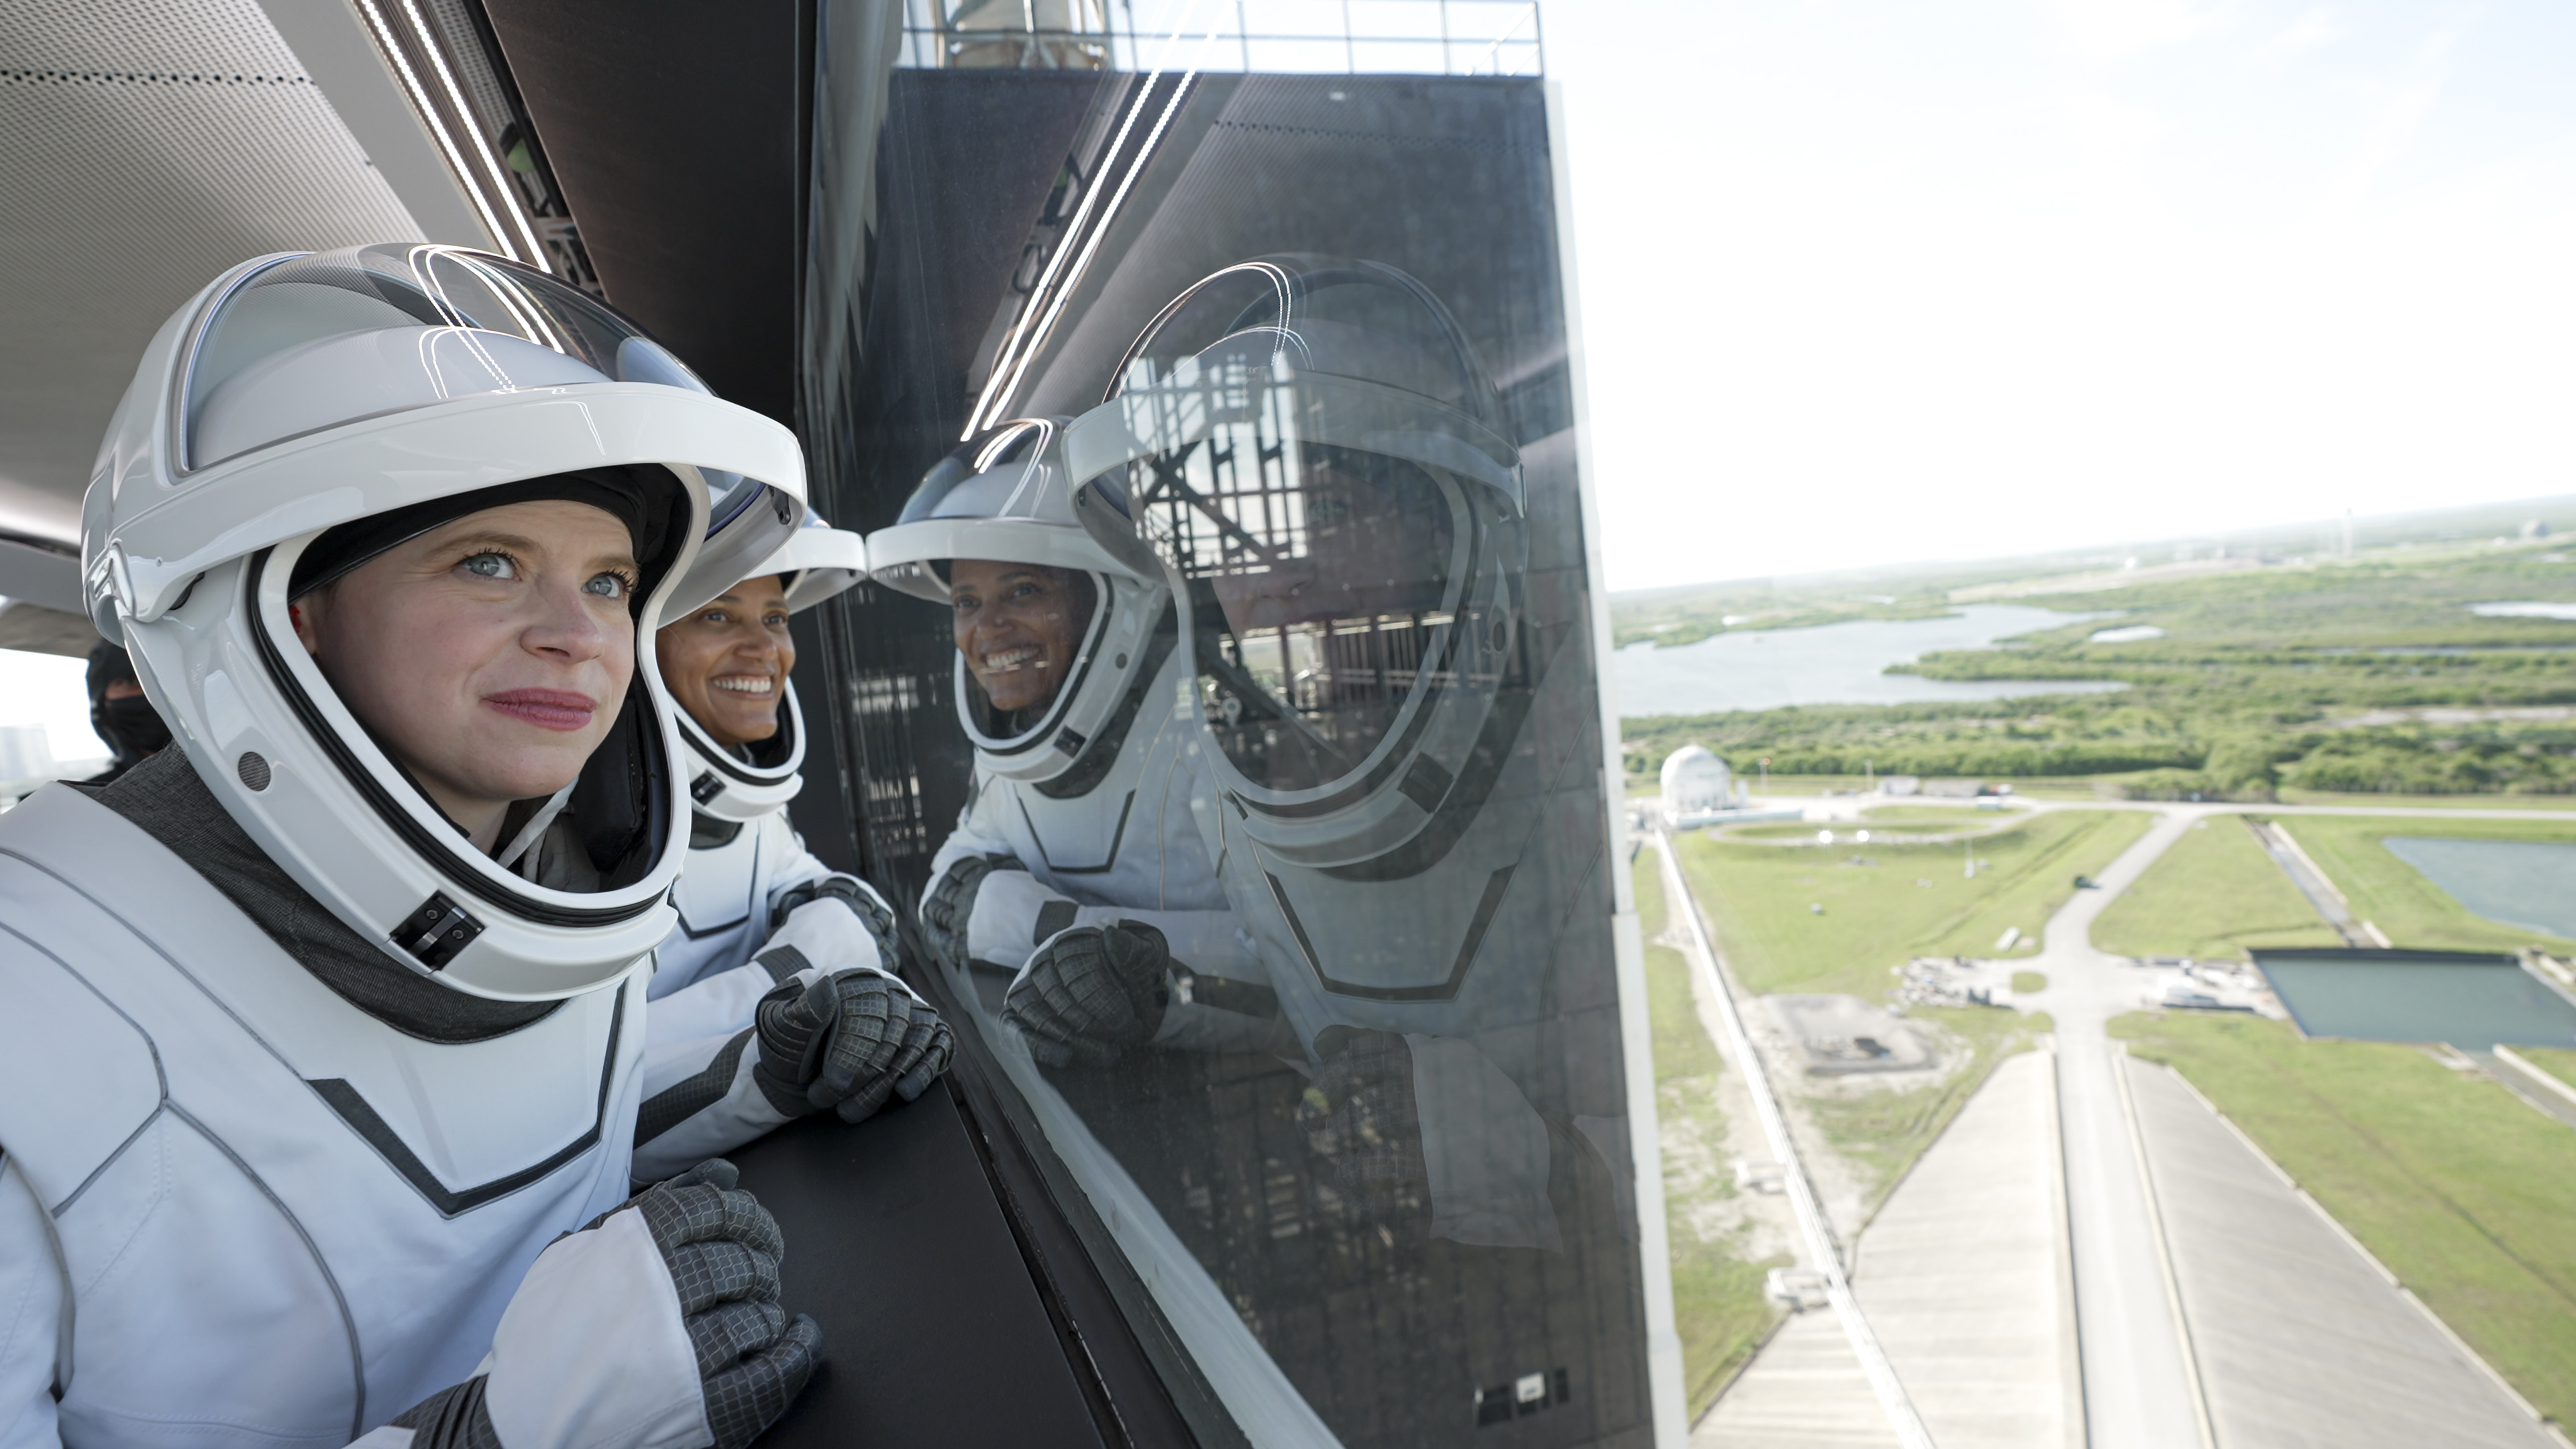 SpaceX Inspiration4 crewmembers Hayley Arceneaux (foreground) and Sian Proctor take in the view from the Crew Access Arm leading to their Crew Dragon Resilience ahead of launching from NASA's Pad 39A at the Kennedy Space Center in Florida on Sept. 15, 2021.